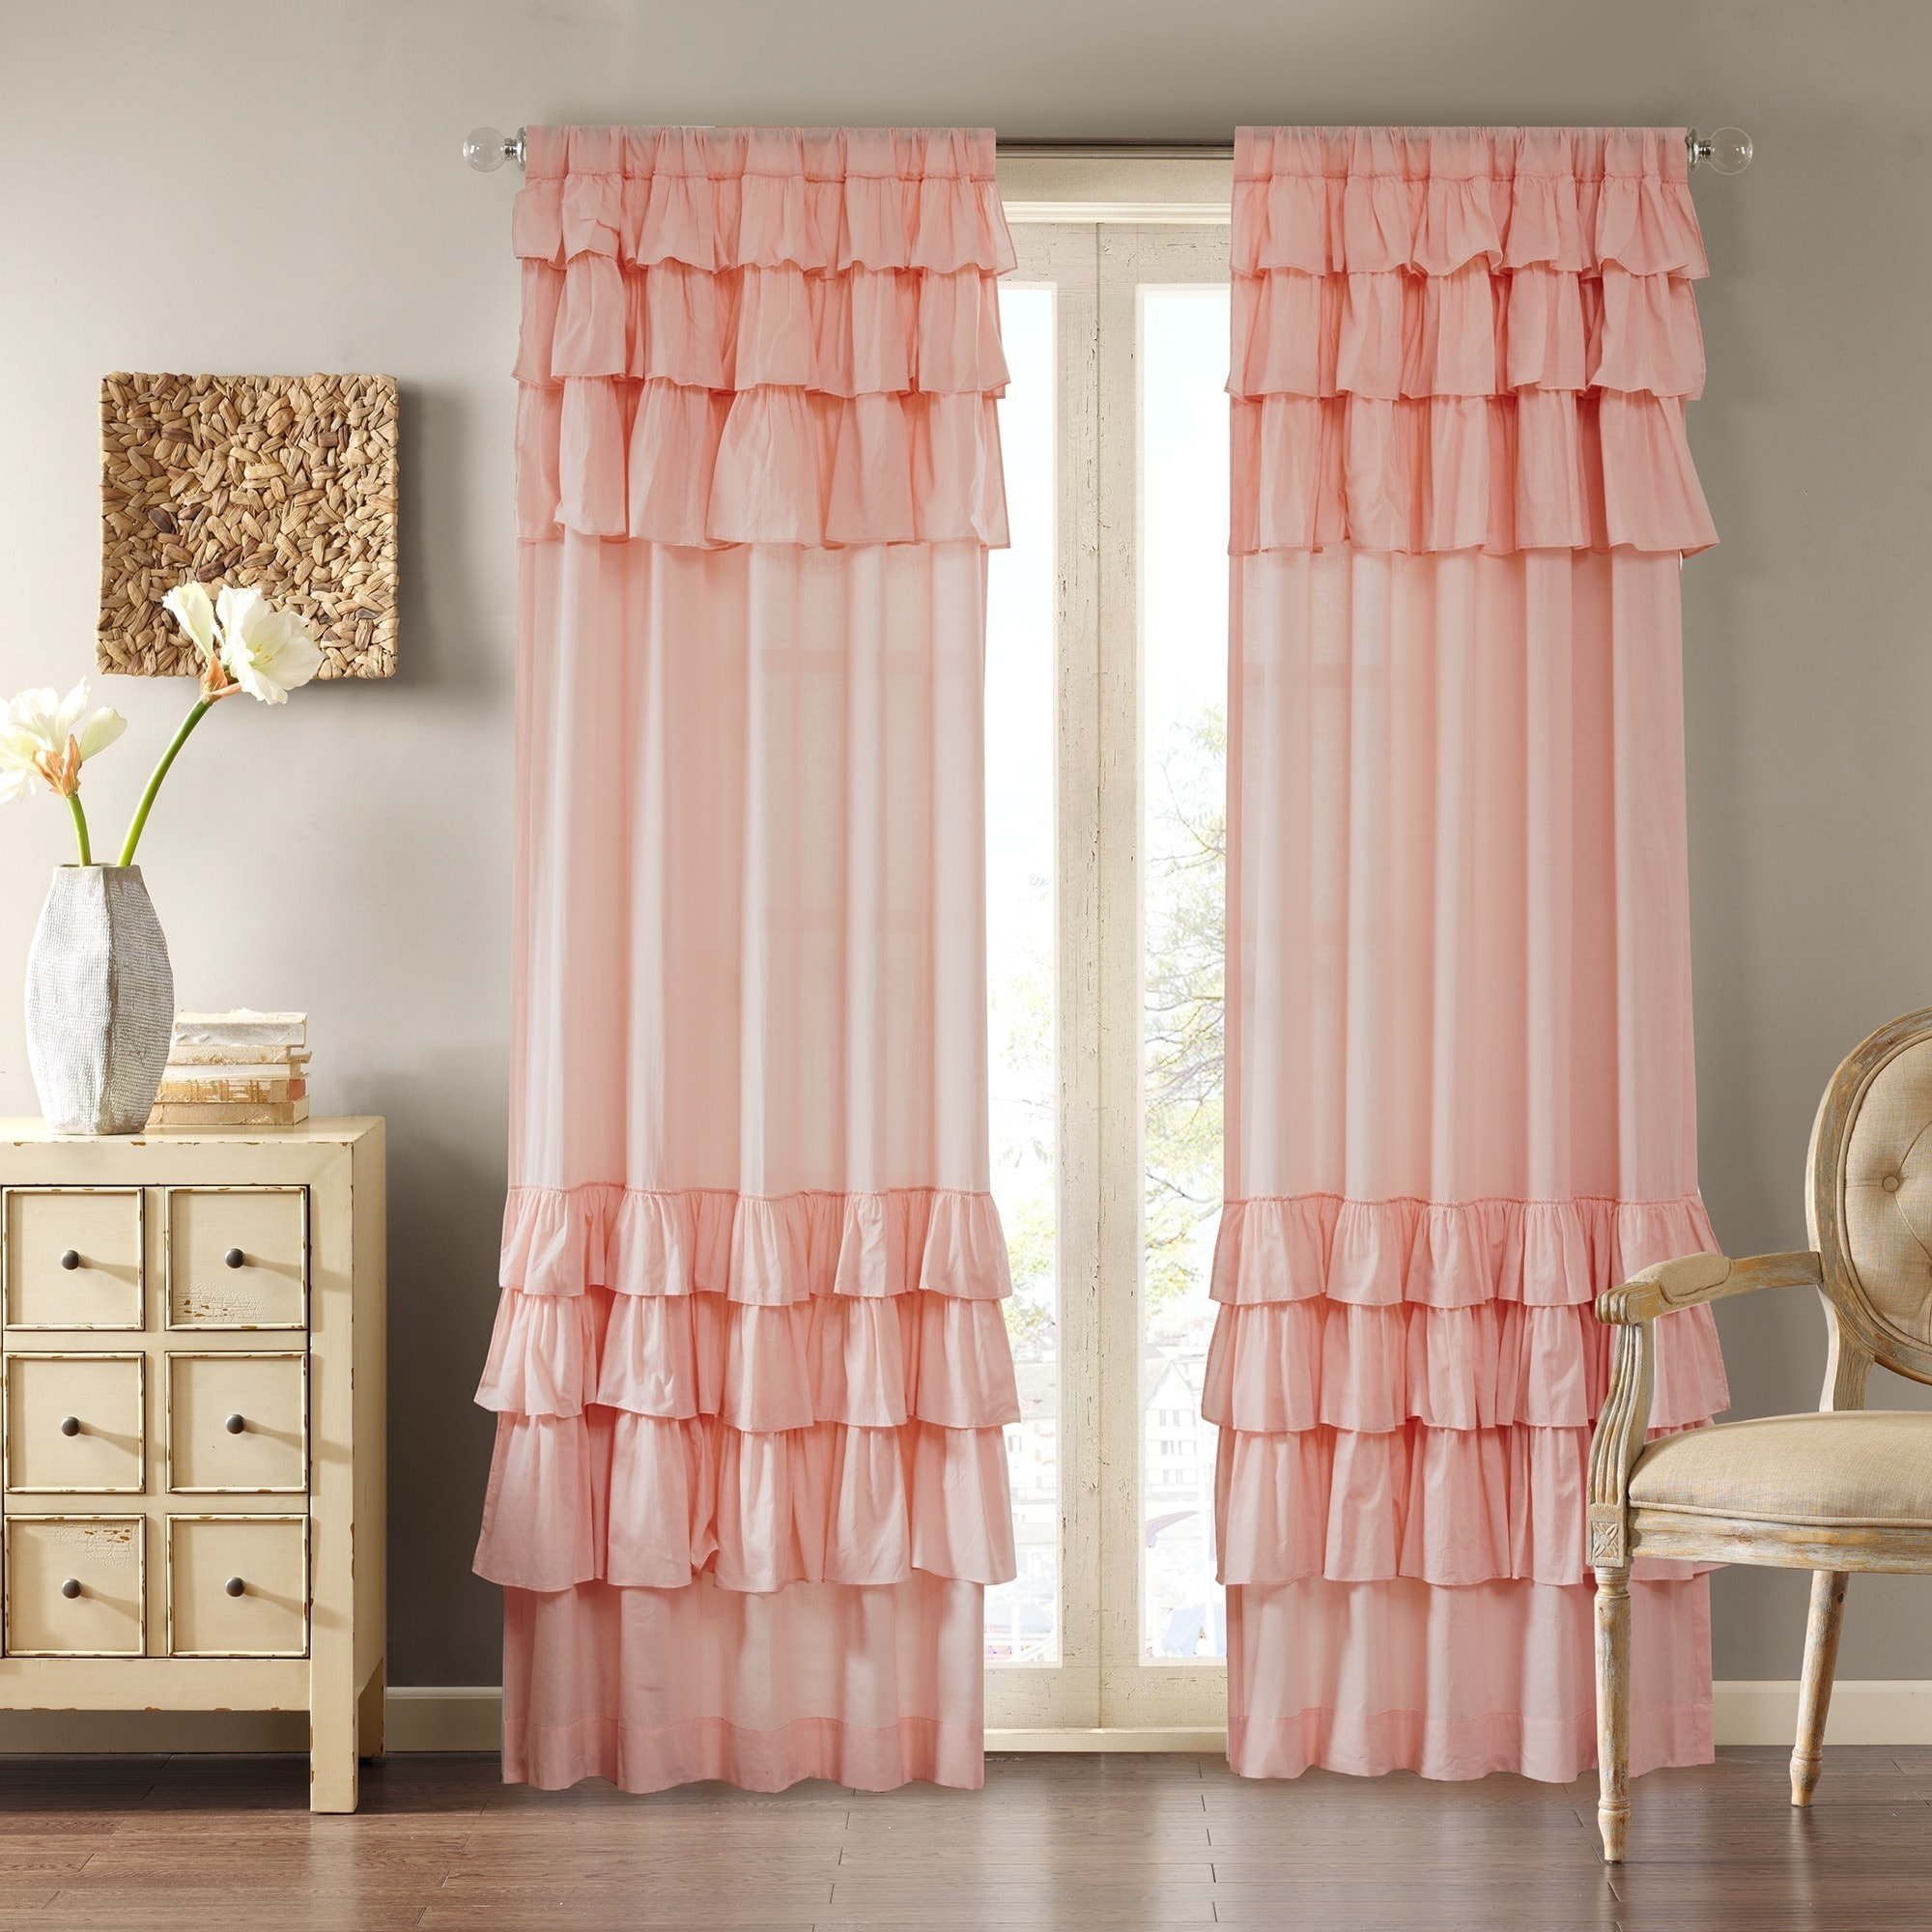 Ruffle Curtain Panel Maison Rouge Marceline Cotton Oversized Ruffle Curtain Panel 63